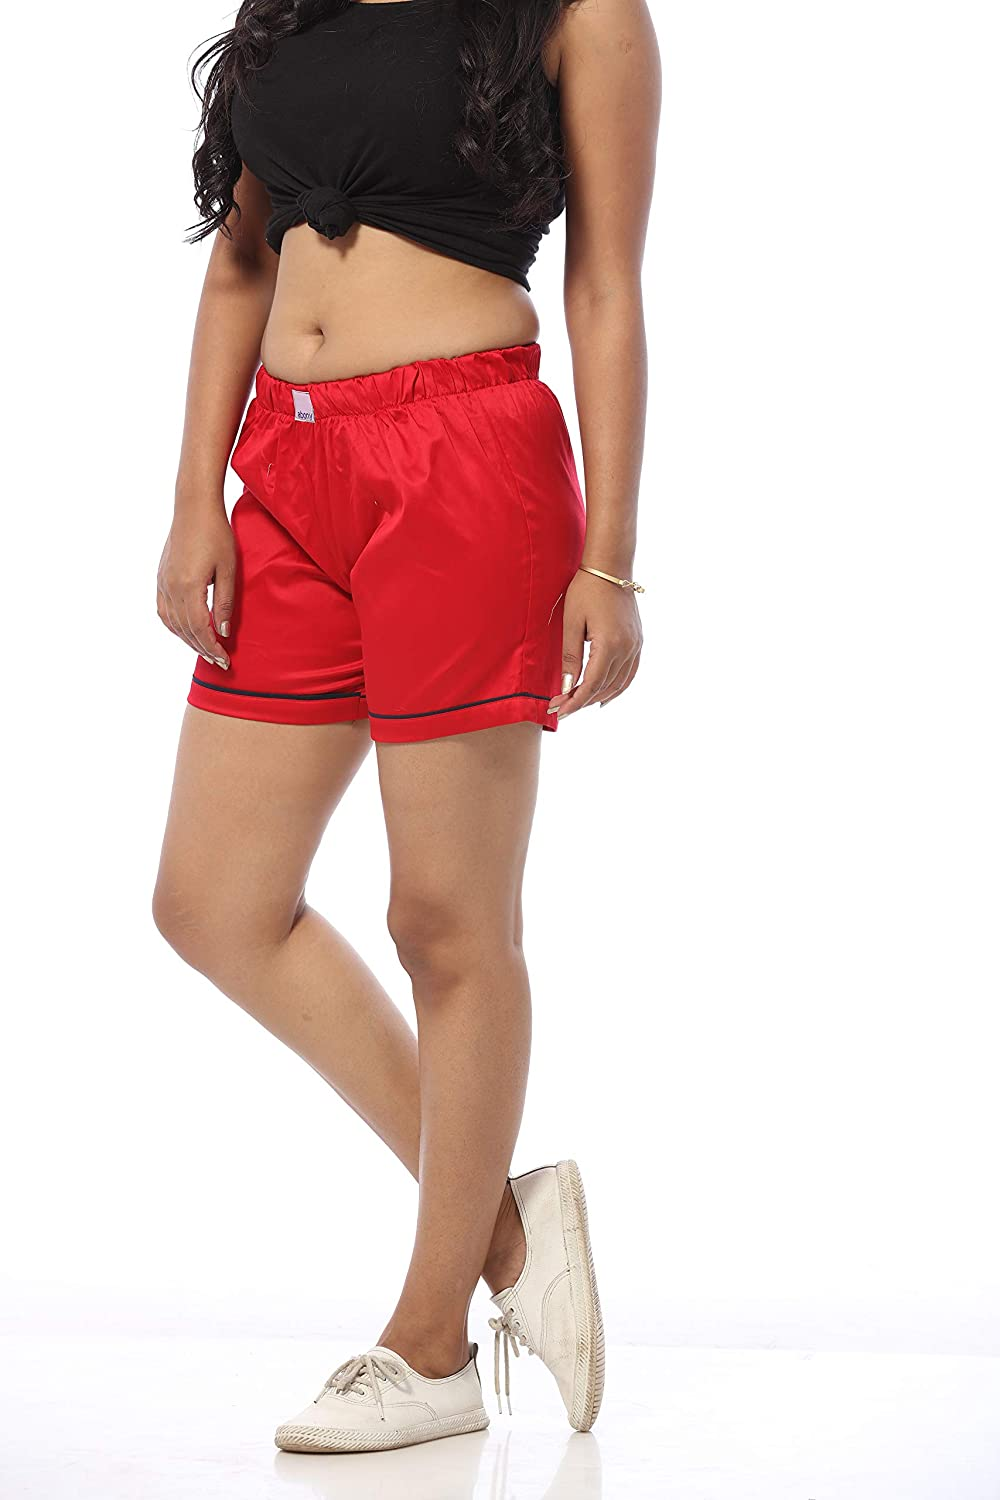 Abony Red Satin Casual Boxer Shorts for Women with Pocket (1644 GBC-S  p)   Amazon.in  Clothing   Accessories a1710ce399